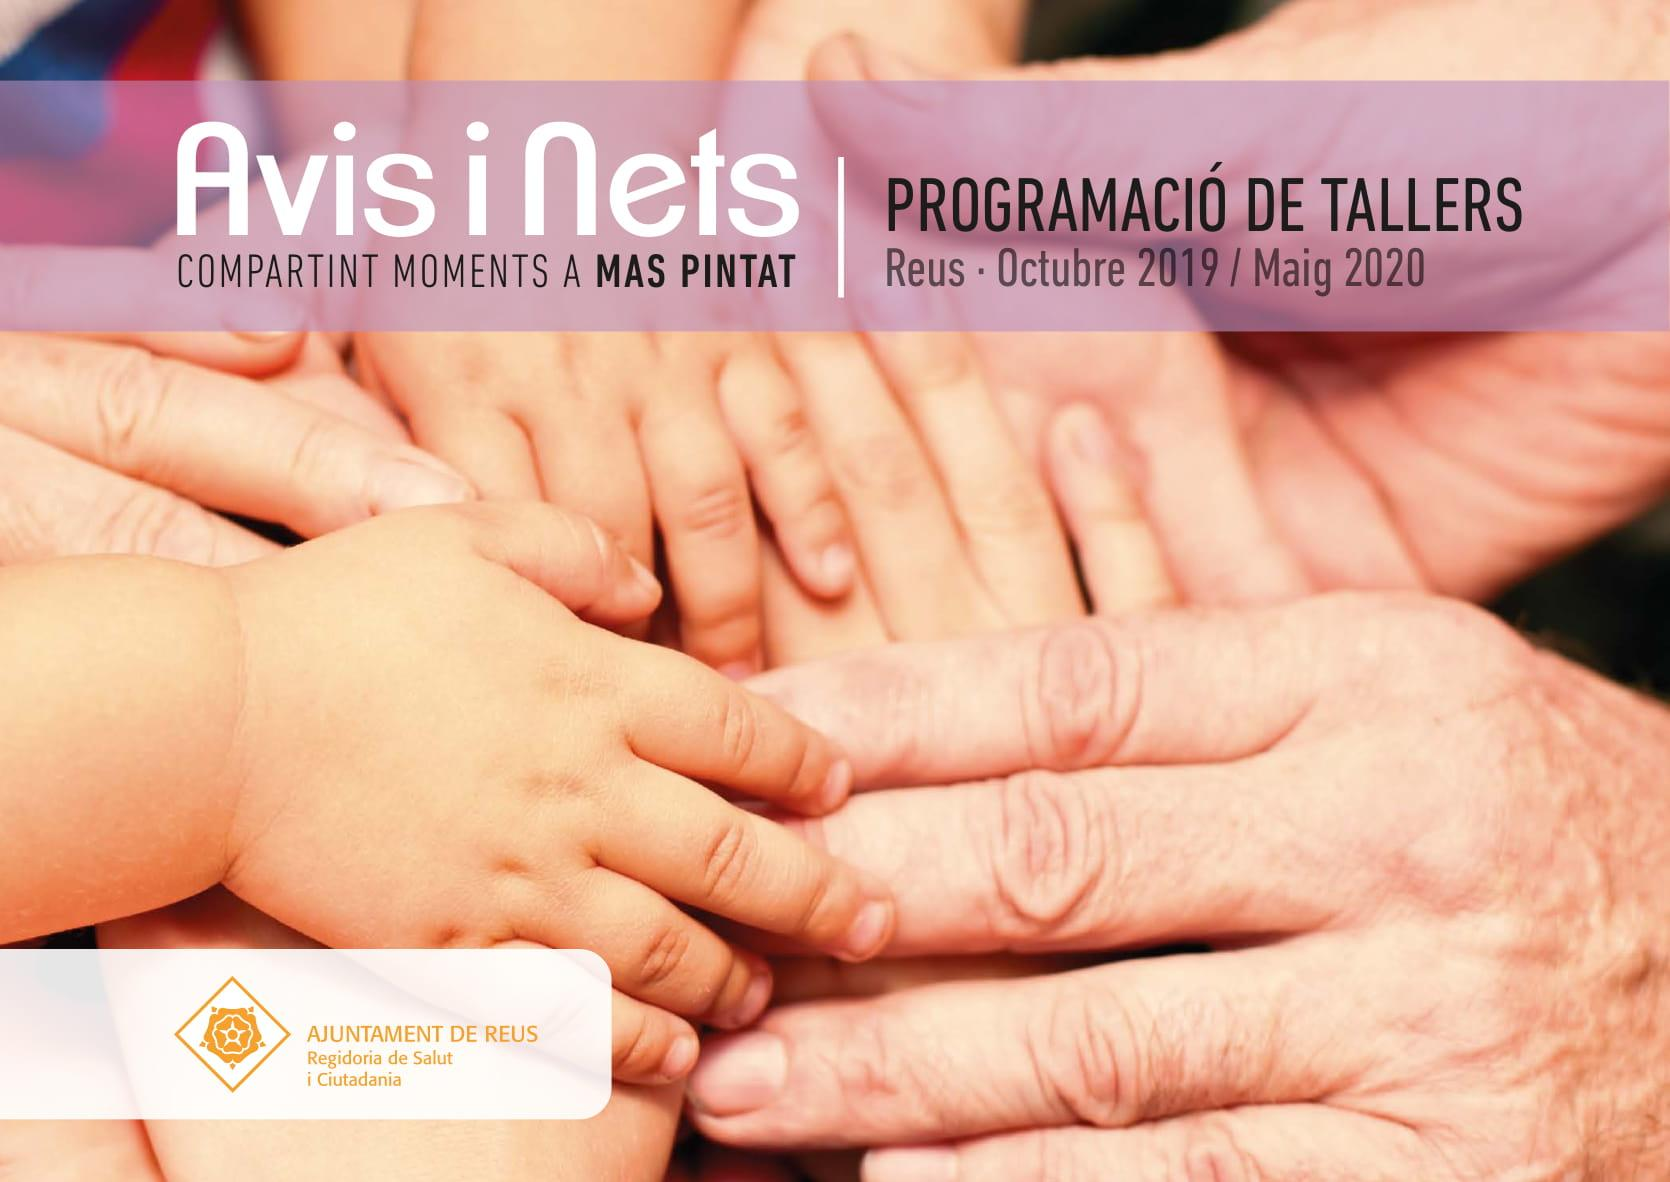 Avis i nets, compartint moments 2019-20